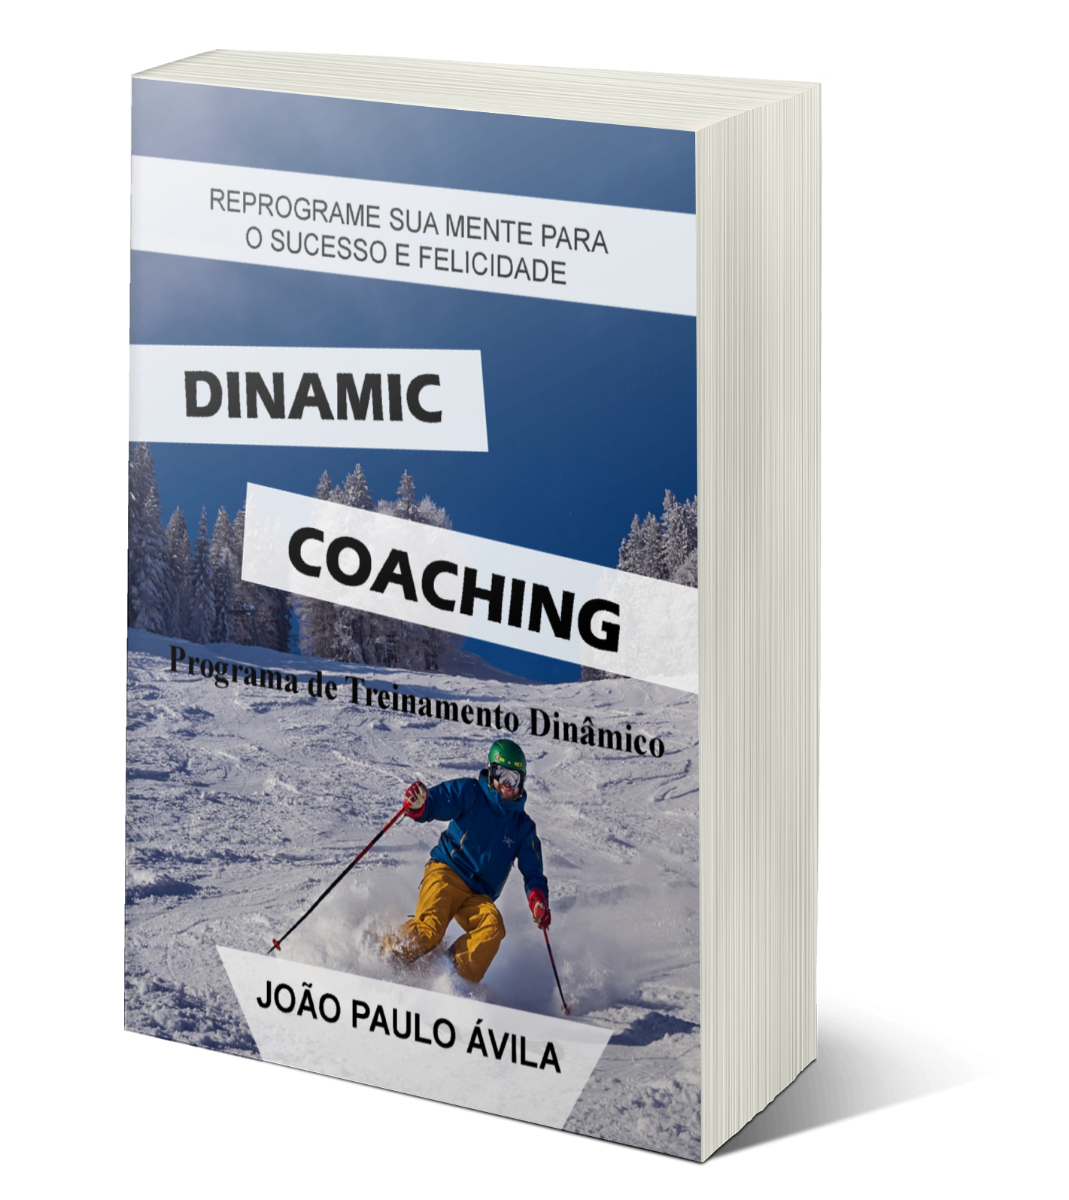 Dinamic Coaching